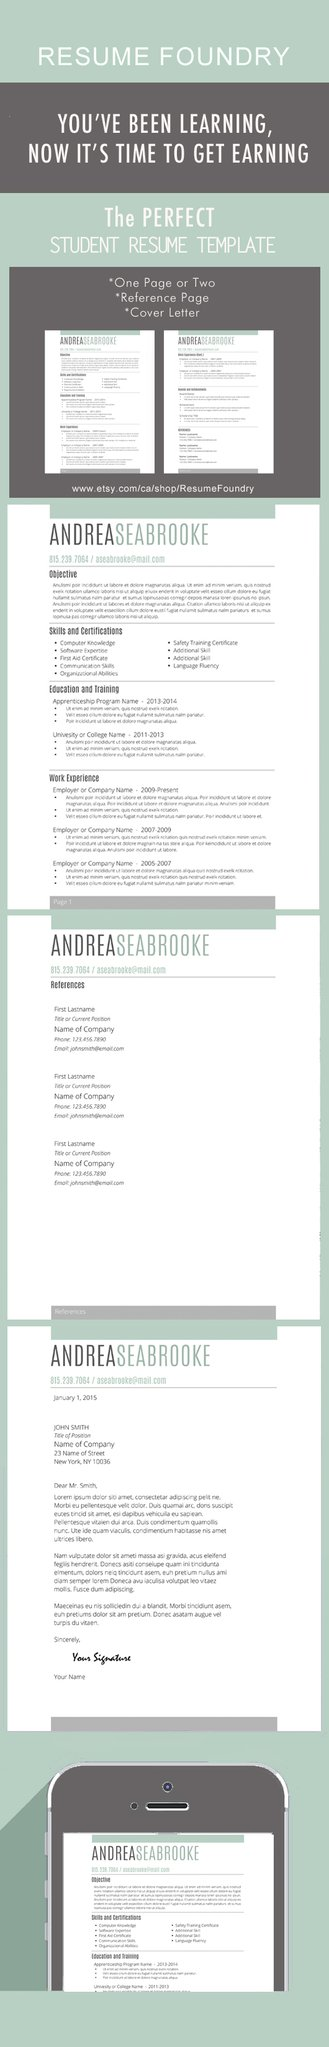 Student Resume Template for Word, 1-3 Page Resume + Cover Letter +